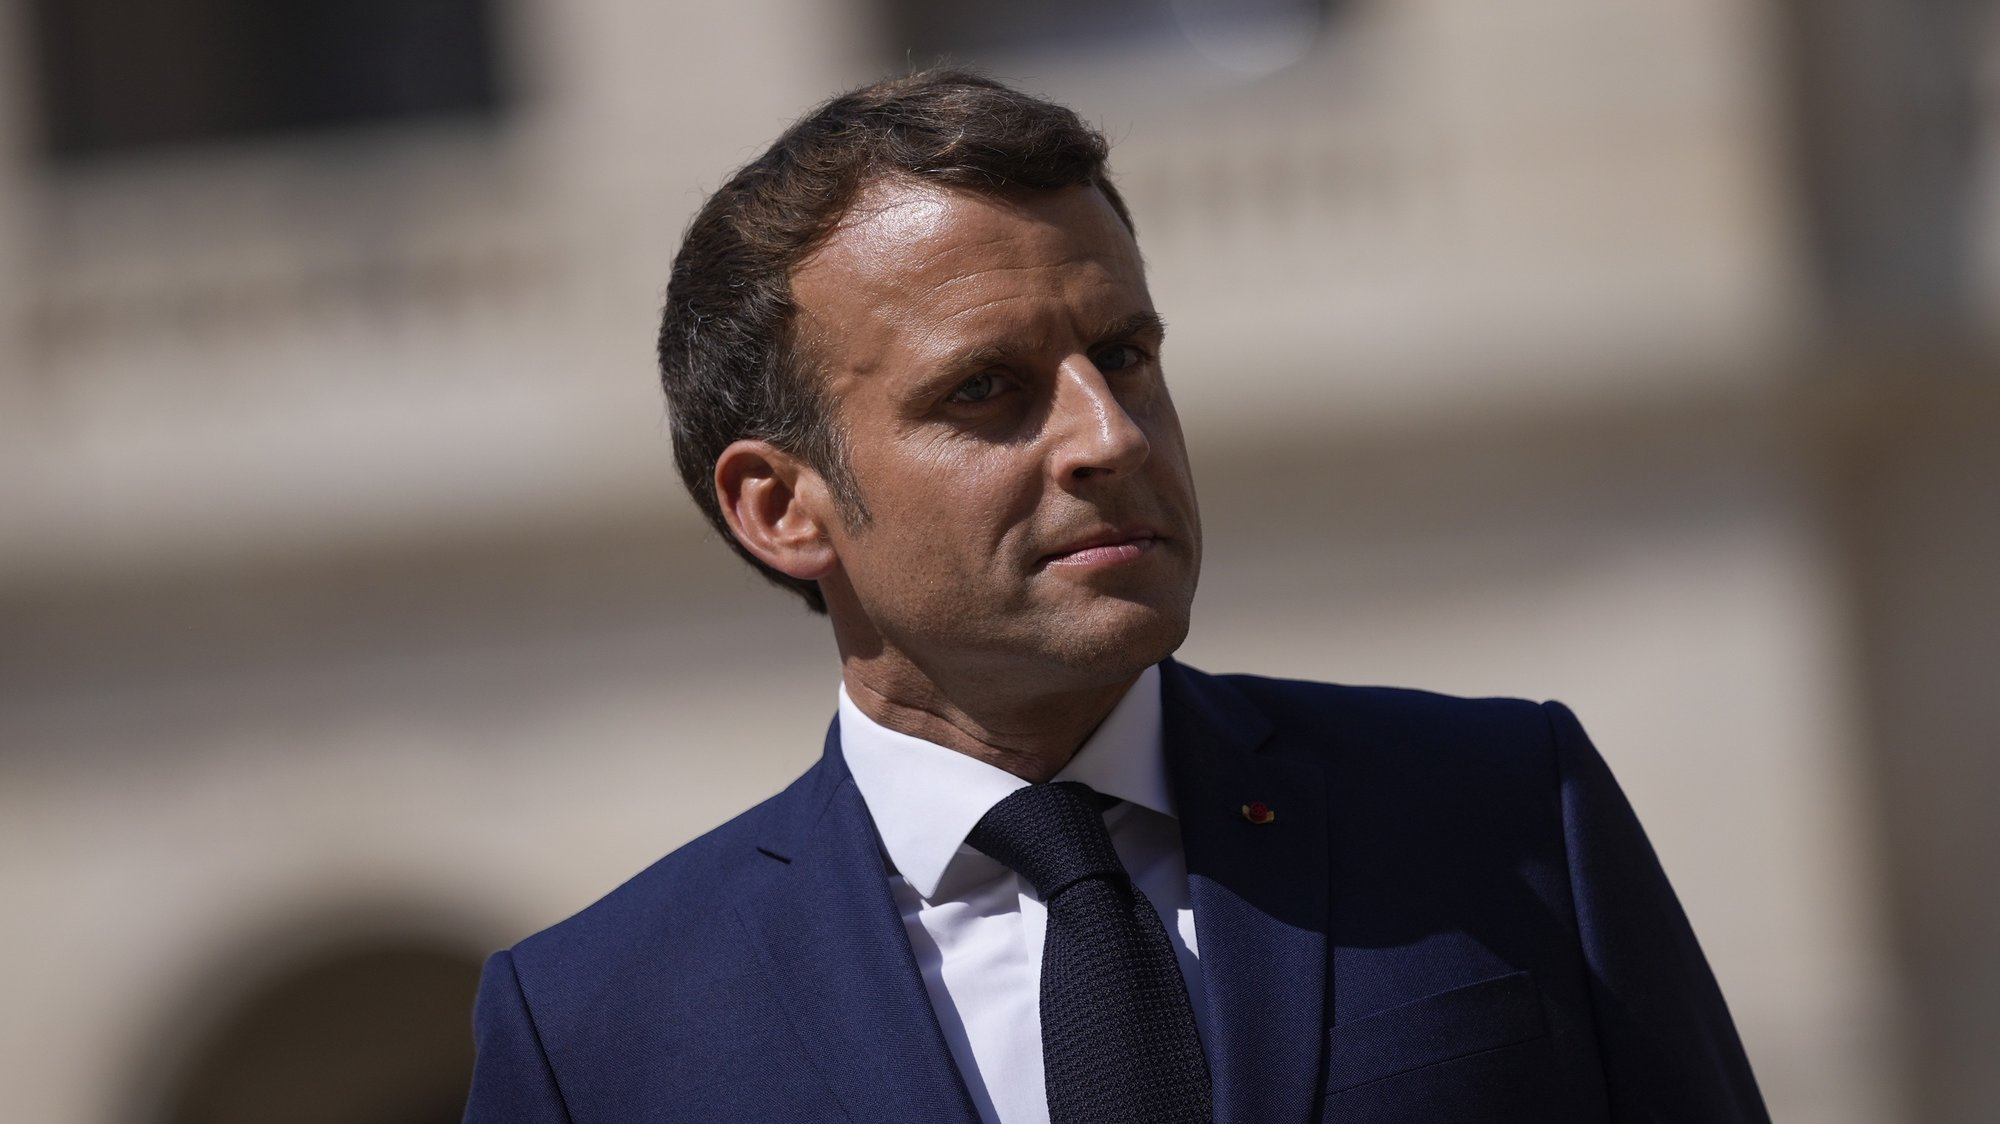 epa09356816 French President Emmanuel Macron attends a farewell ceremony for the French armed forces chief of staff, Gen. Francois Lecointre at the Invalides monument in Paris, France, 21 July 2021.  EPA/DANIEL COLE / POOL MAXPPP OUT